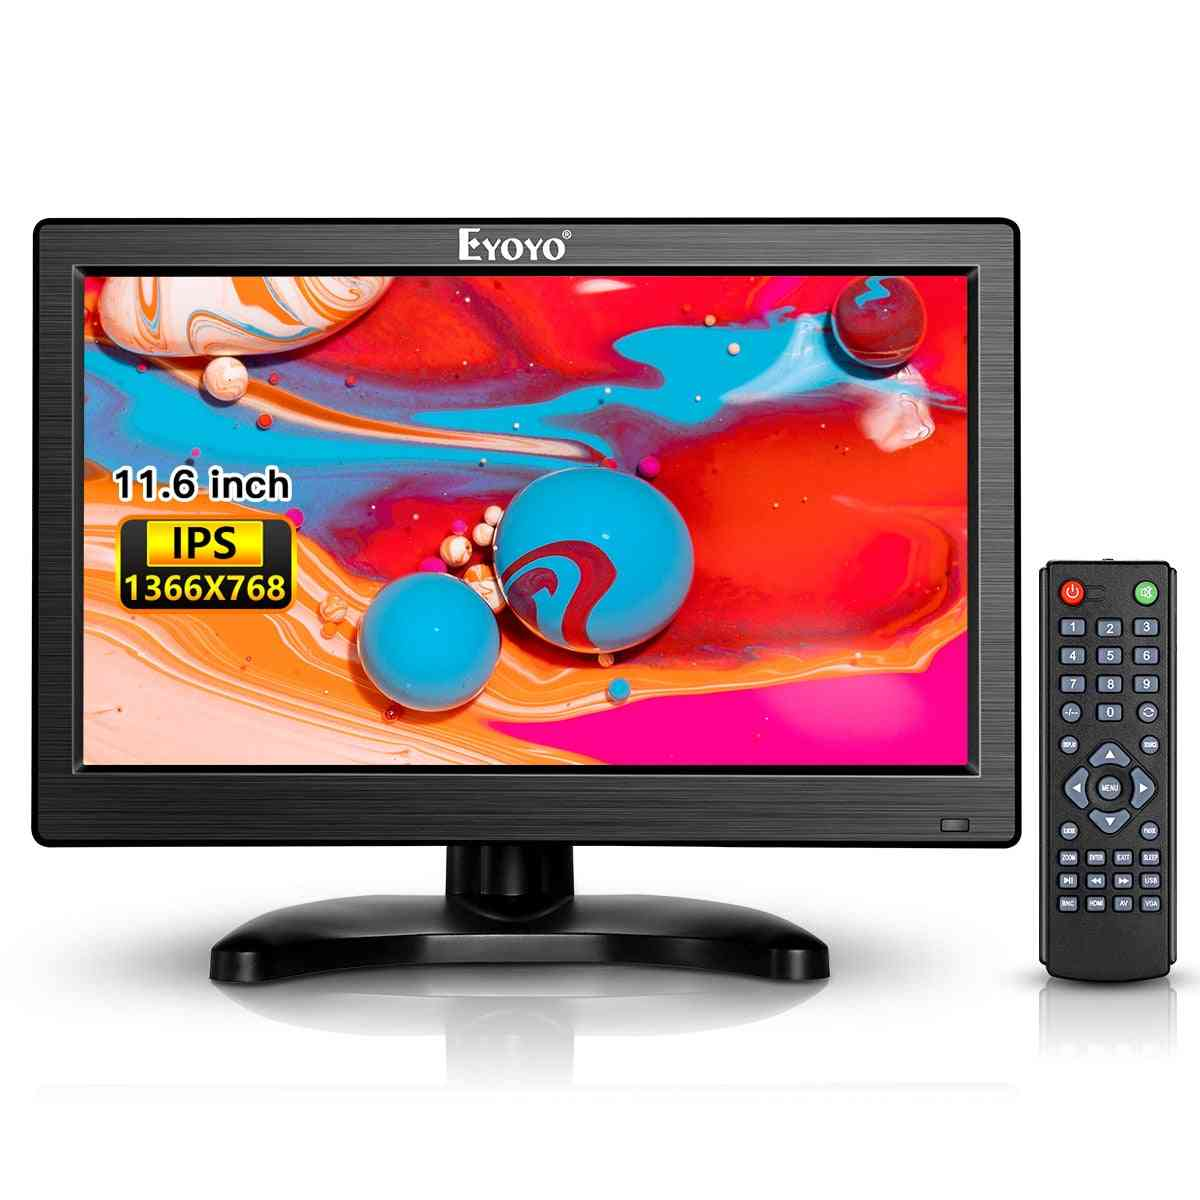 Hd Monitor, Cctv Lcd Screen With Audio Remote Control For Security Camera